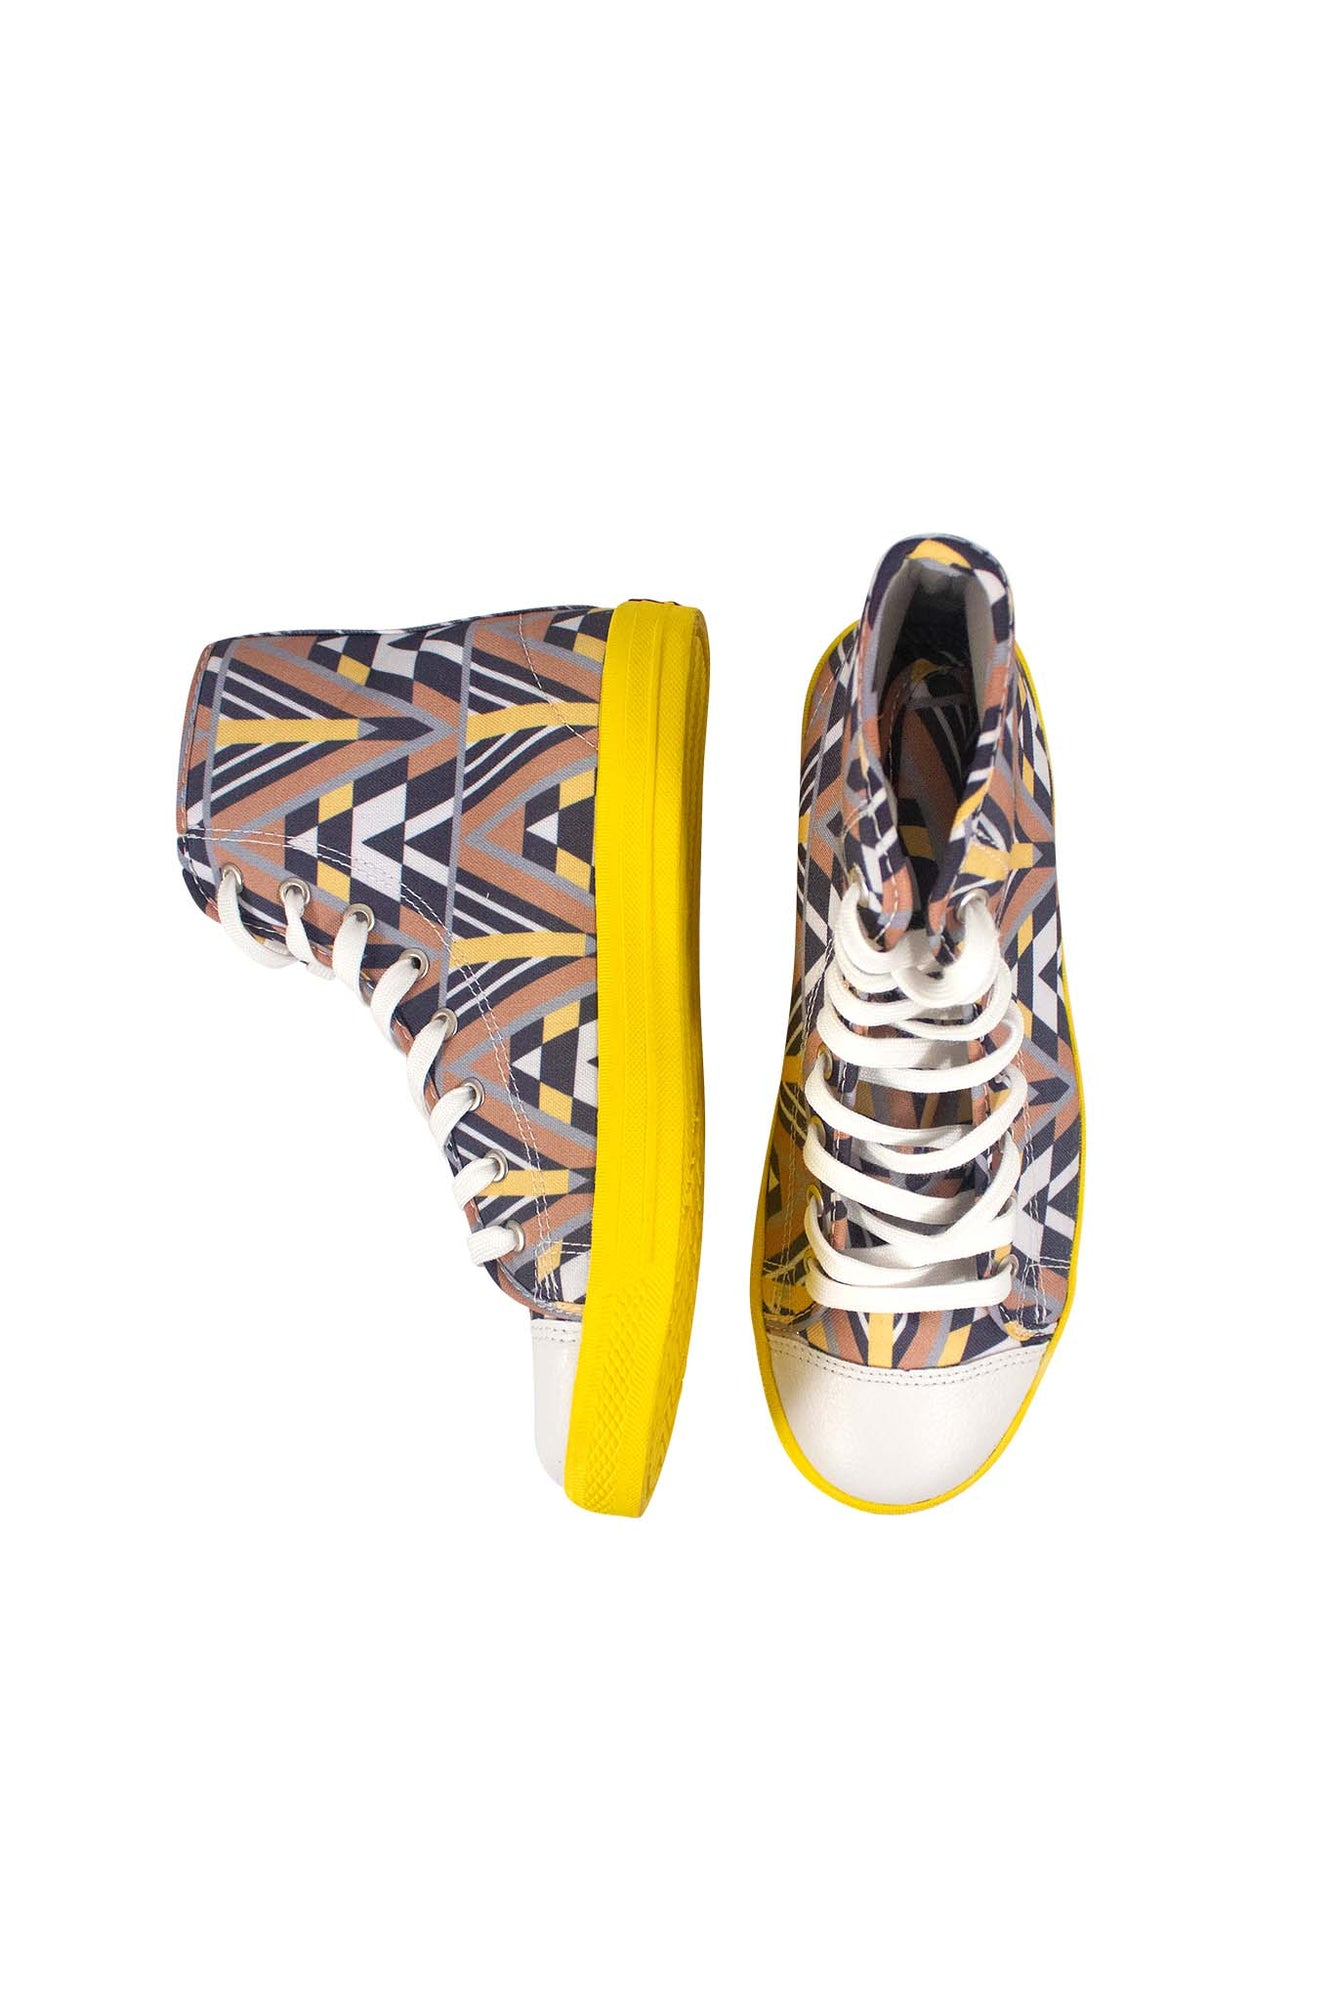 KEYES Hightop Sneakers Yellow Supatri Print